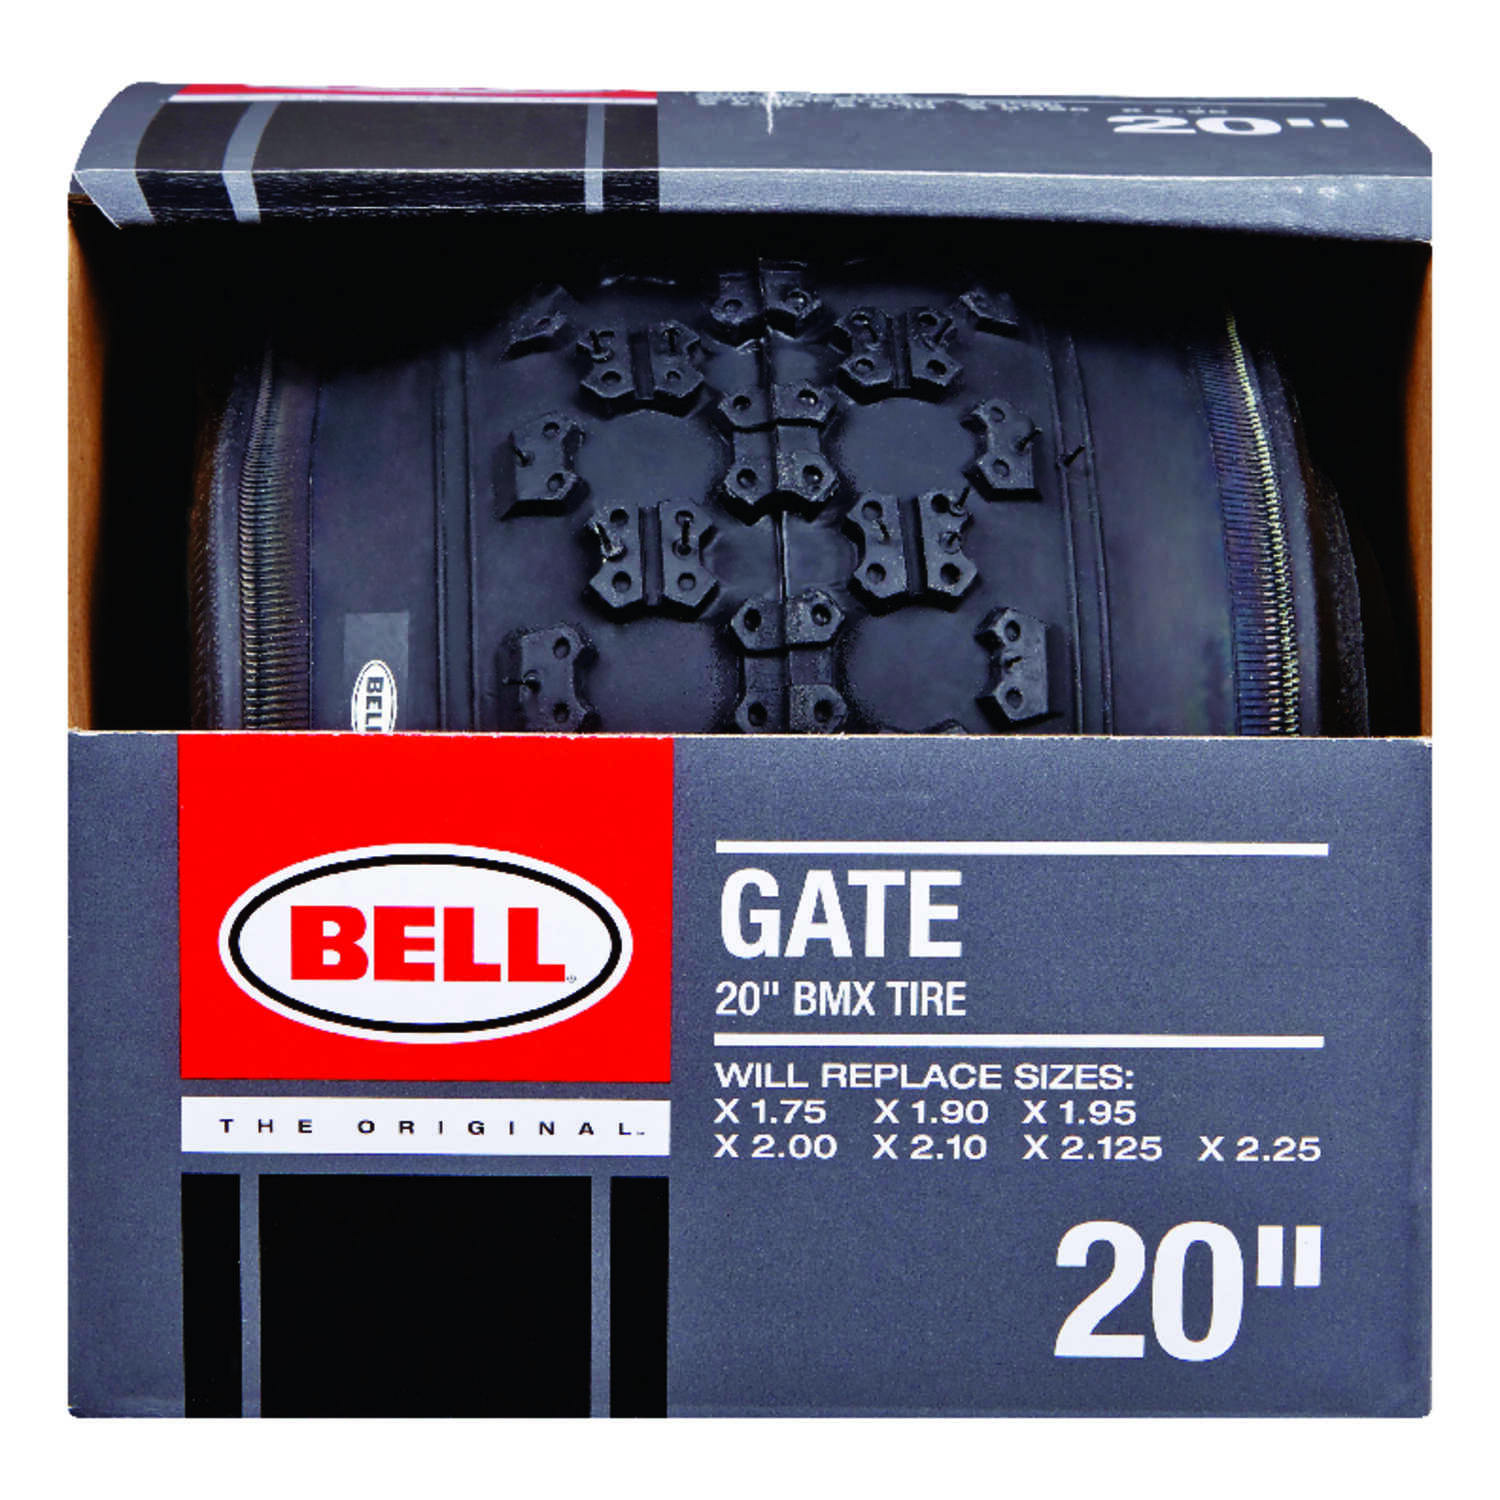 Bell Sports  Gate  20 in. Rubber  Bicycle Tire  20 x 1.75 - 2.25  1 pk